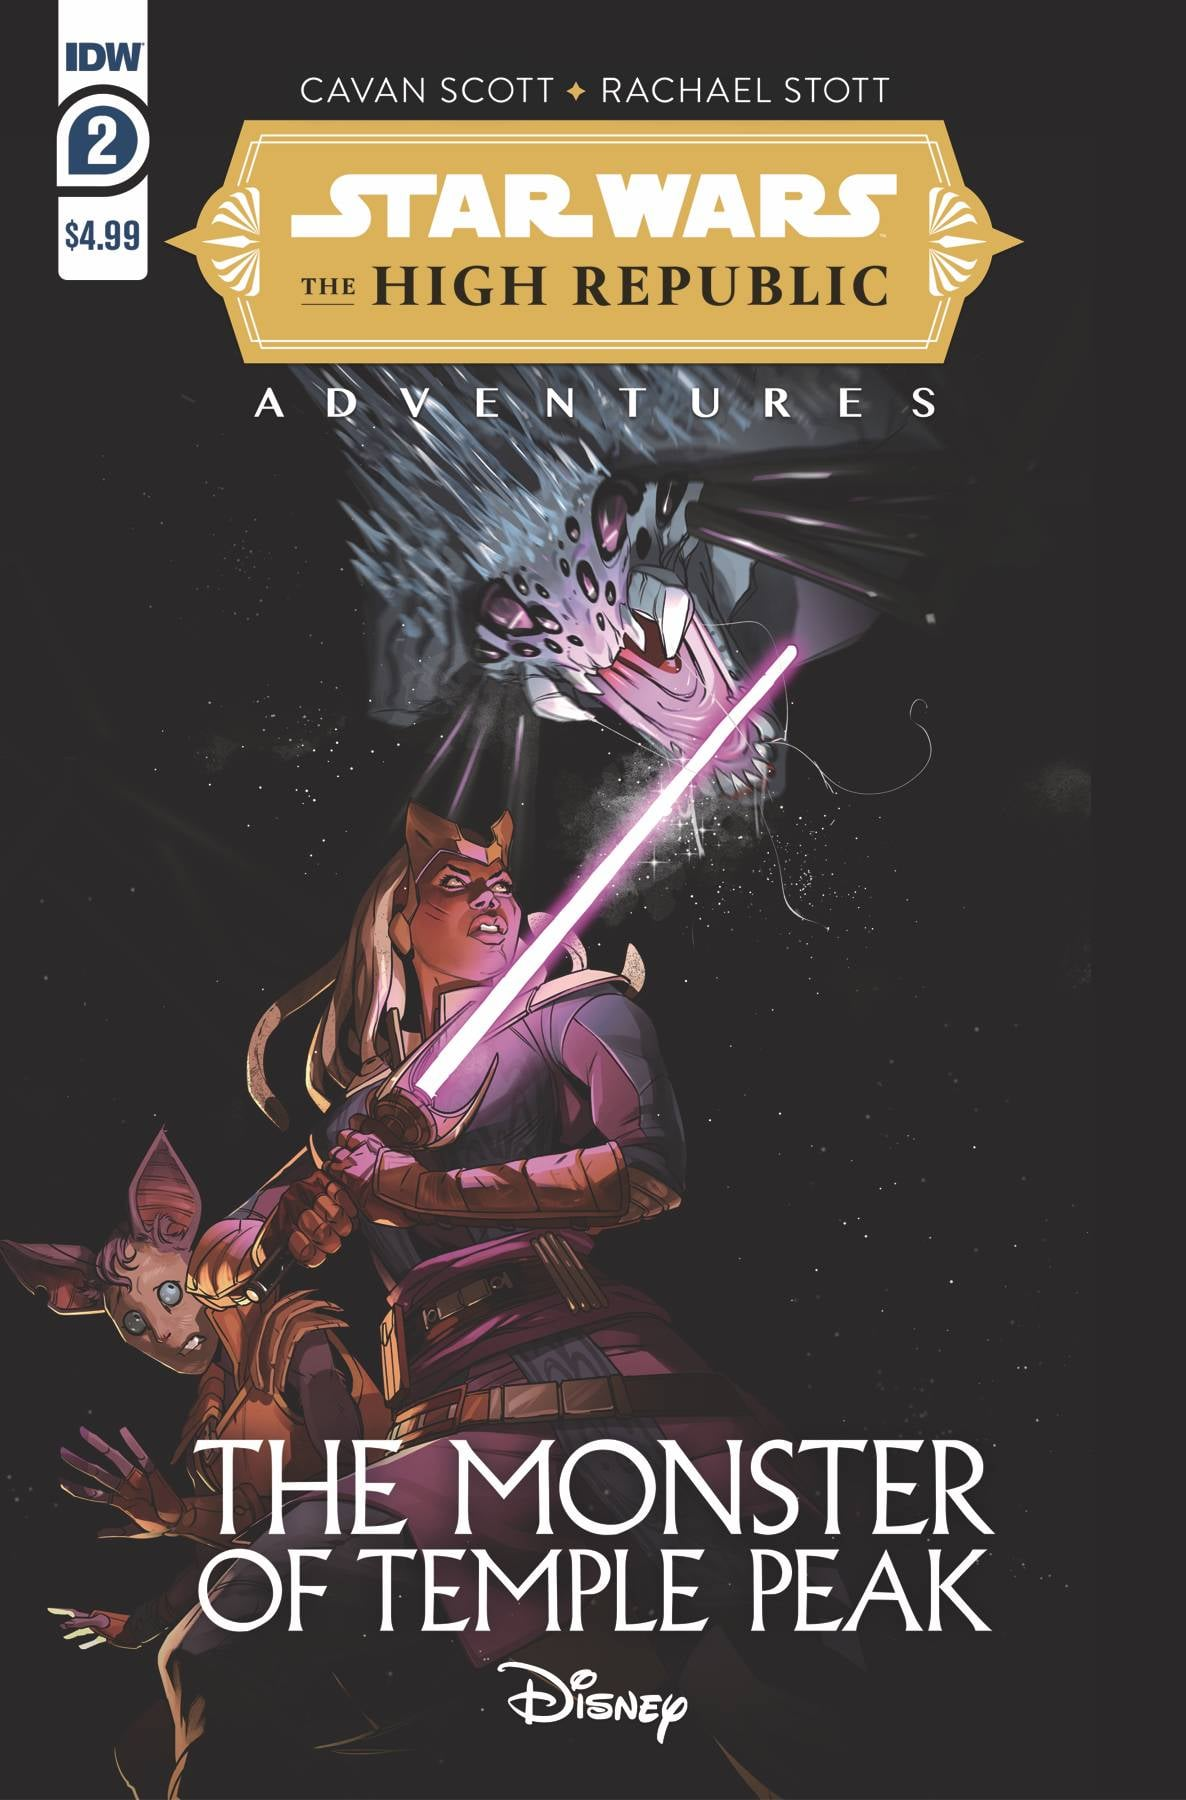 Star Wars The High Republic Adventures: The Monster of Temple Peak 2